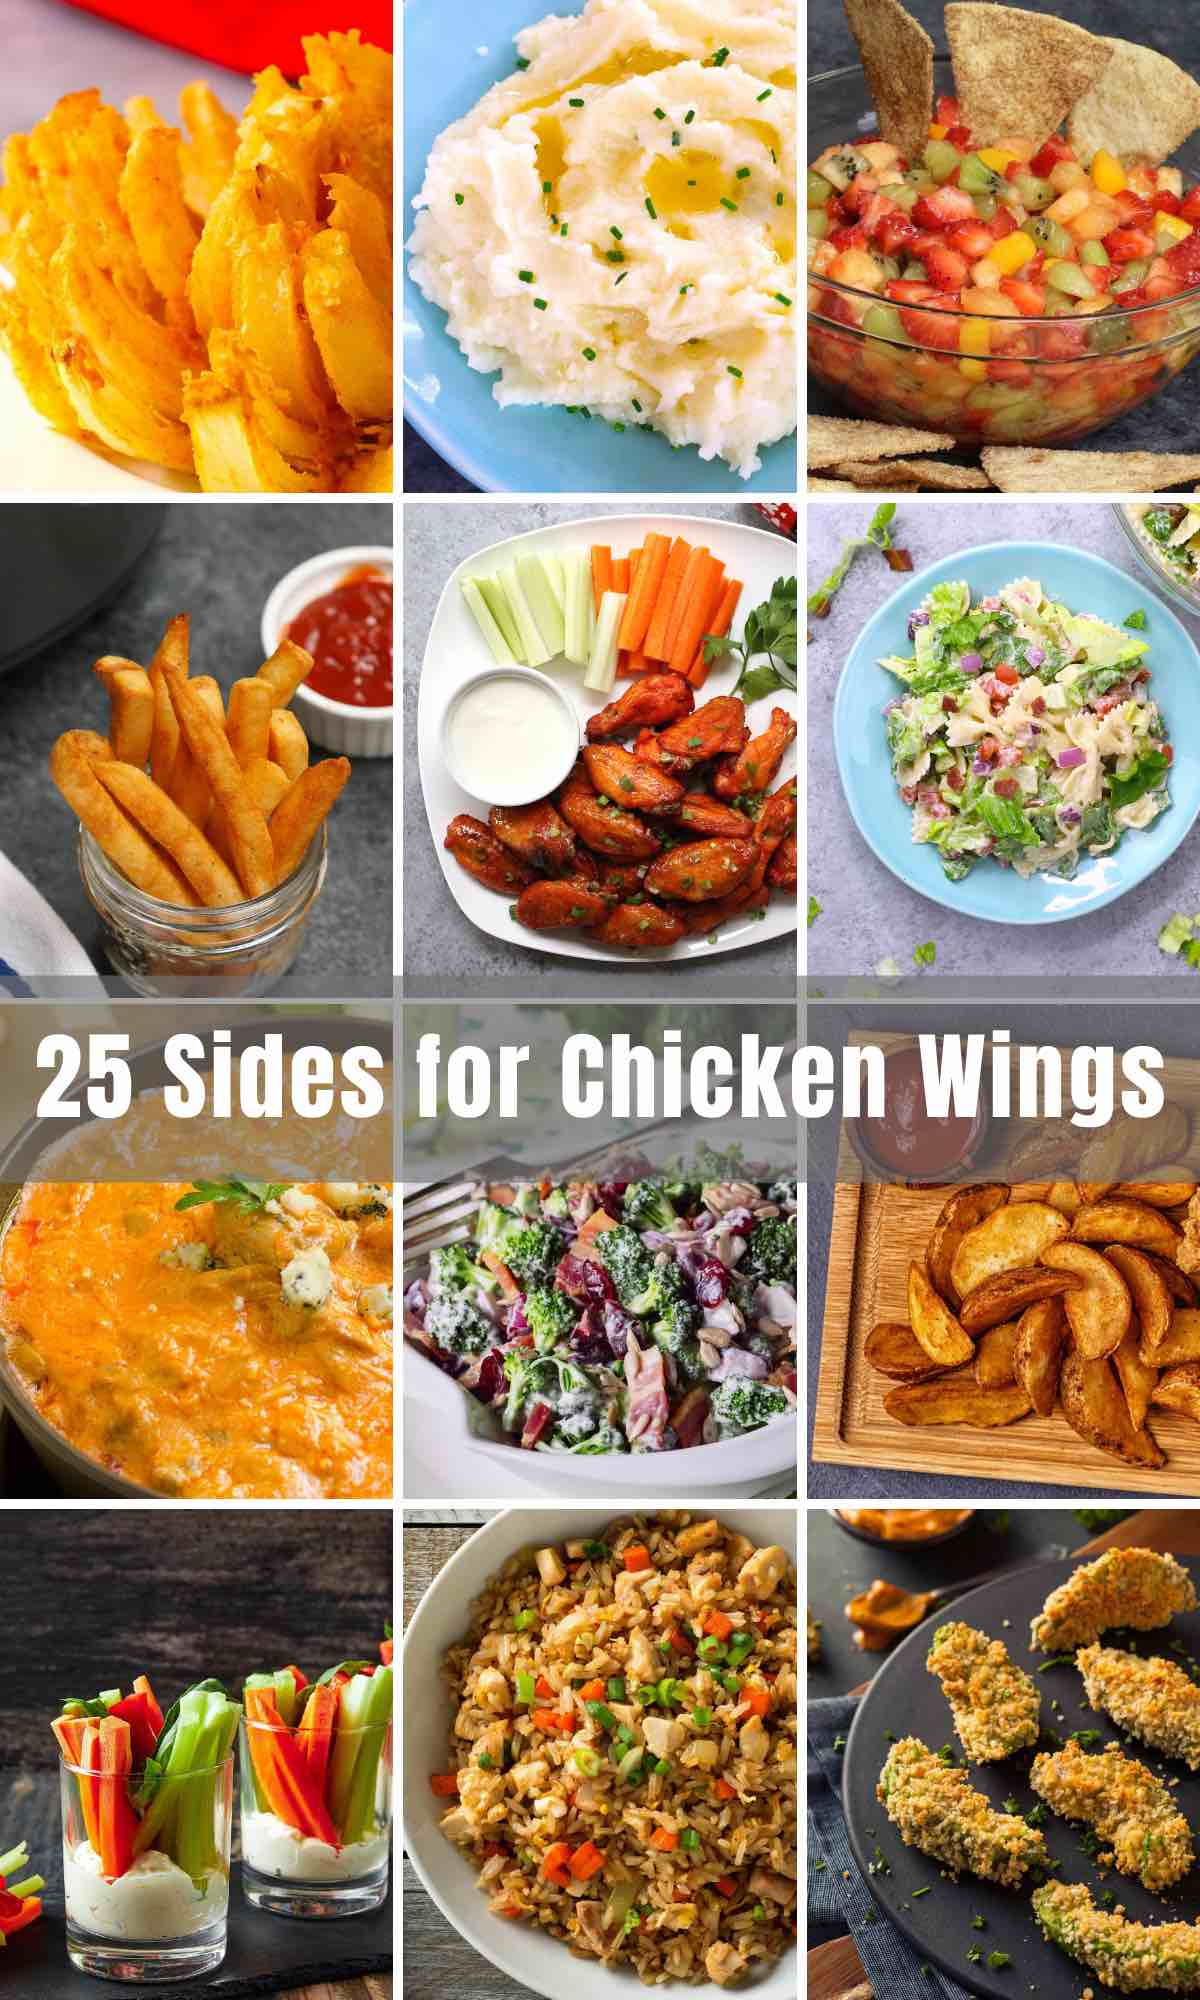 Are you looking for sides for your chicken wings? I have plenty! We have all our favorite side dish recipes you'll need to serve with your chicken wings – appetizers, dips, salads, salsas, pasta – you name it!